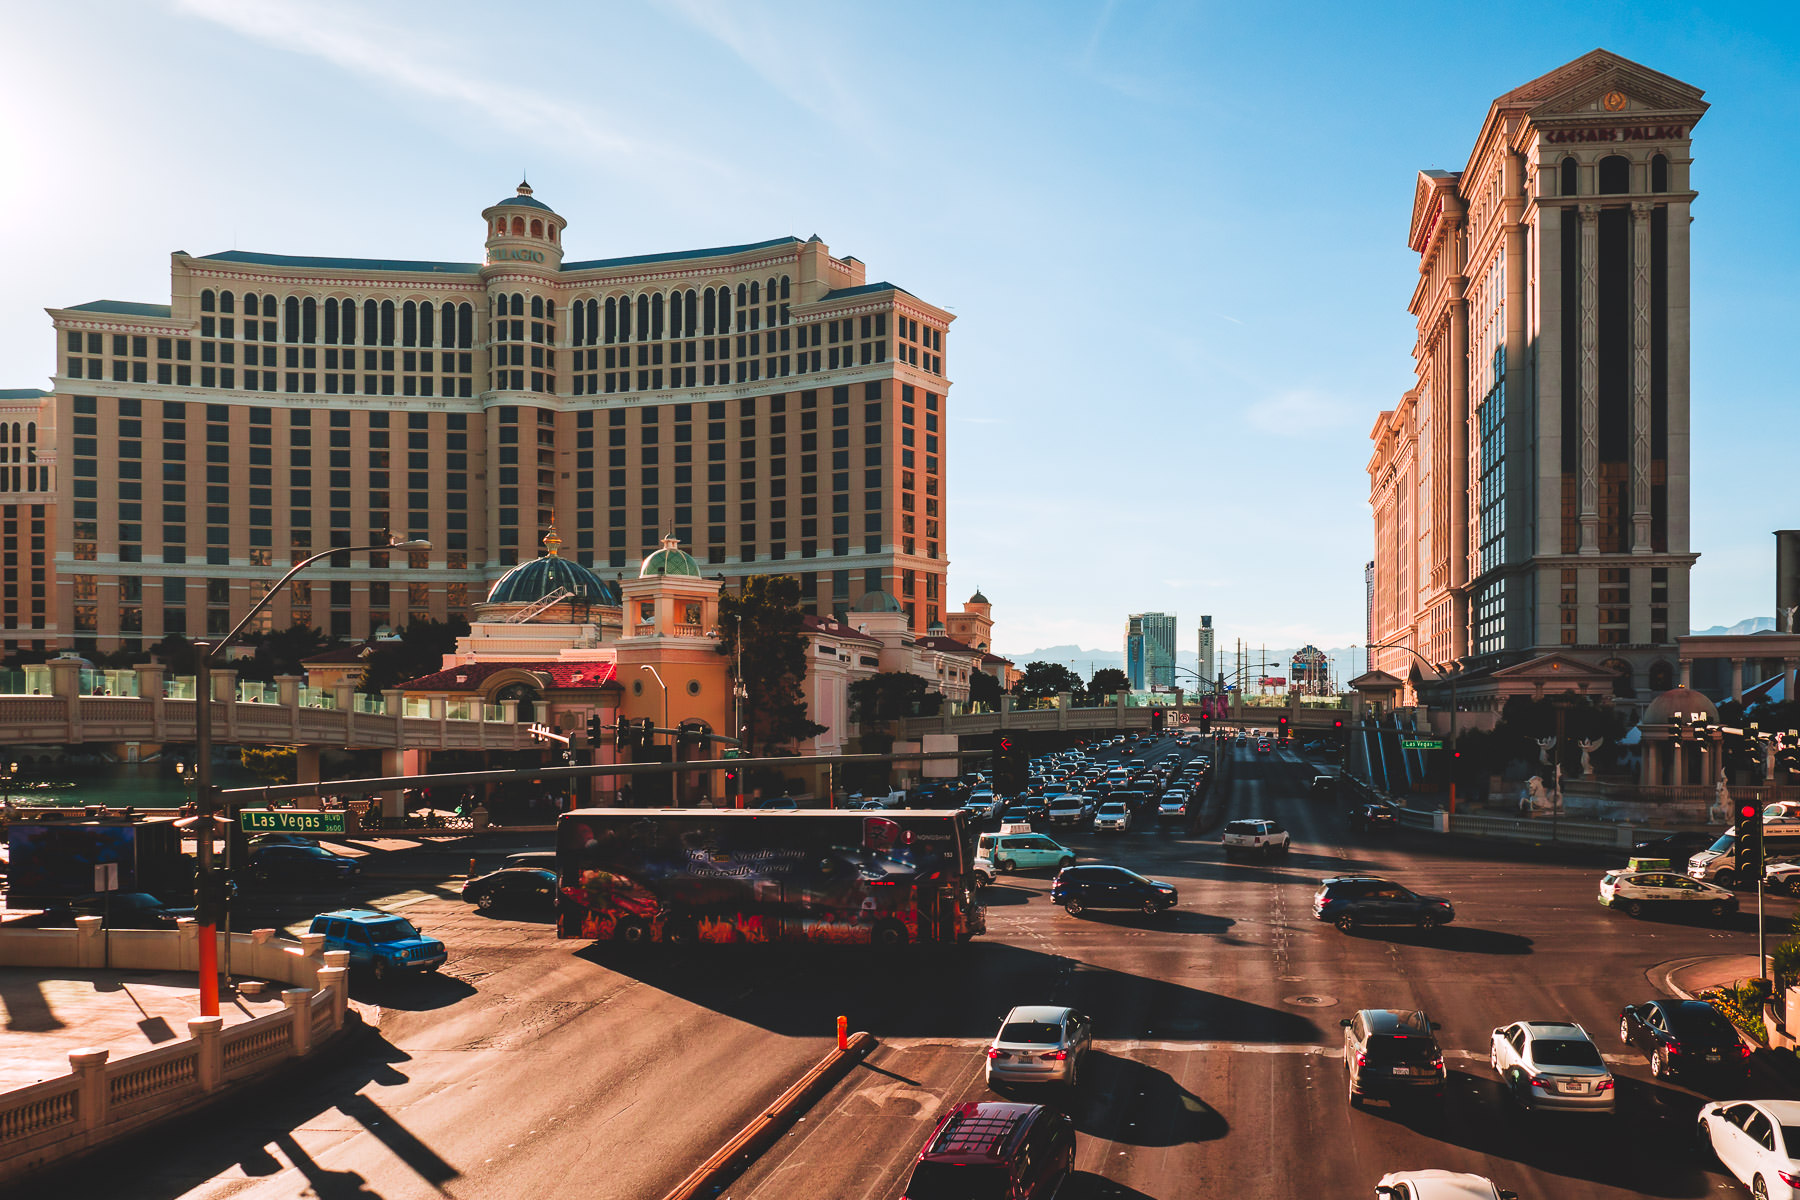 Traffic at the intersection of Flamingo Road and the Las Vegas Strip (Las Vegas Boulevard).